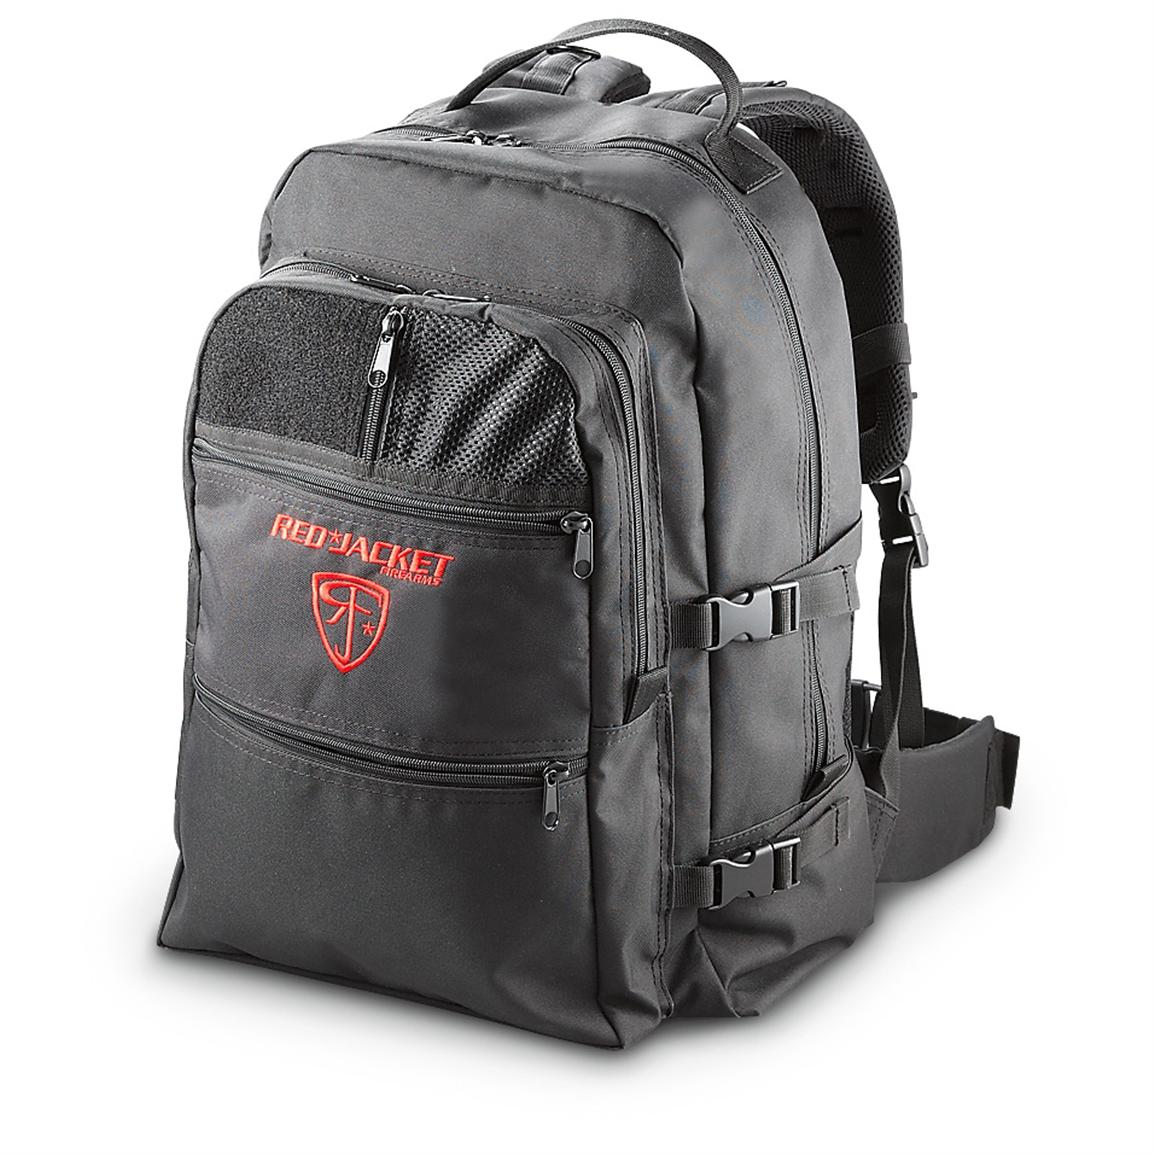 Red Jacket Firearms 3-Day Assault Pack